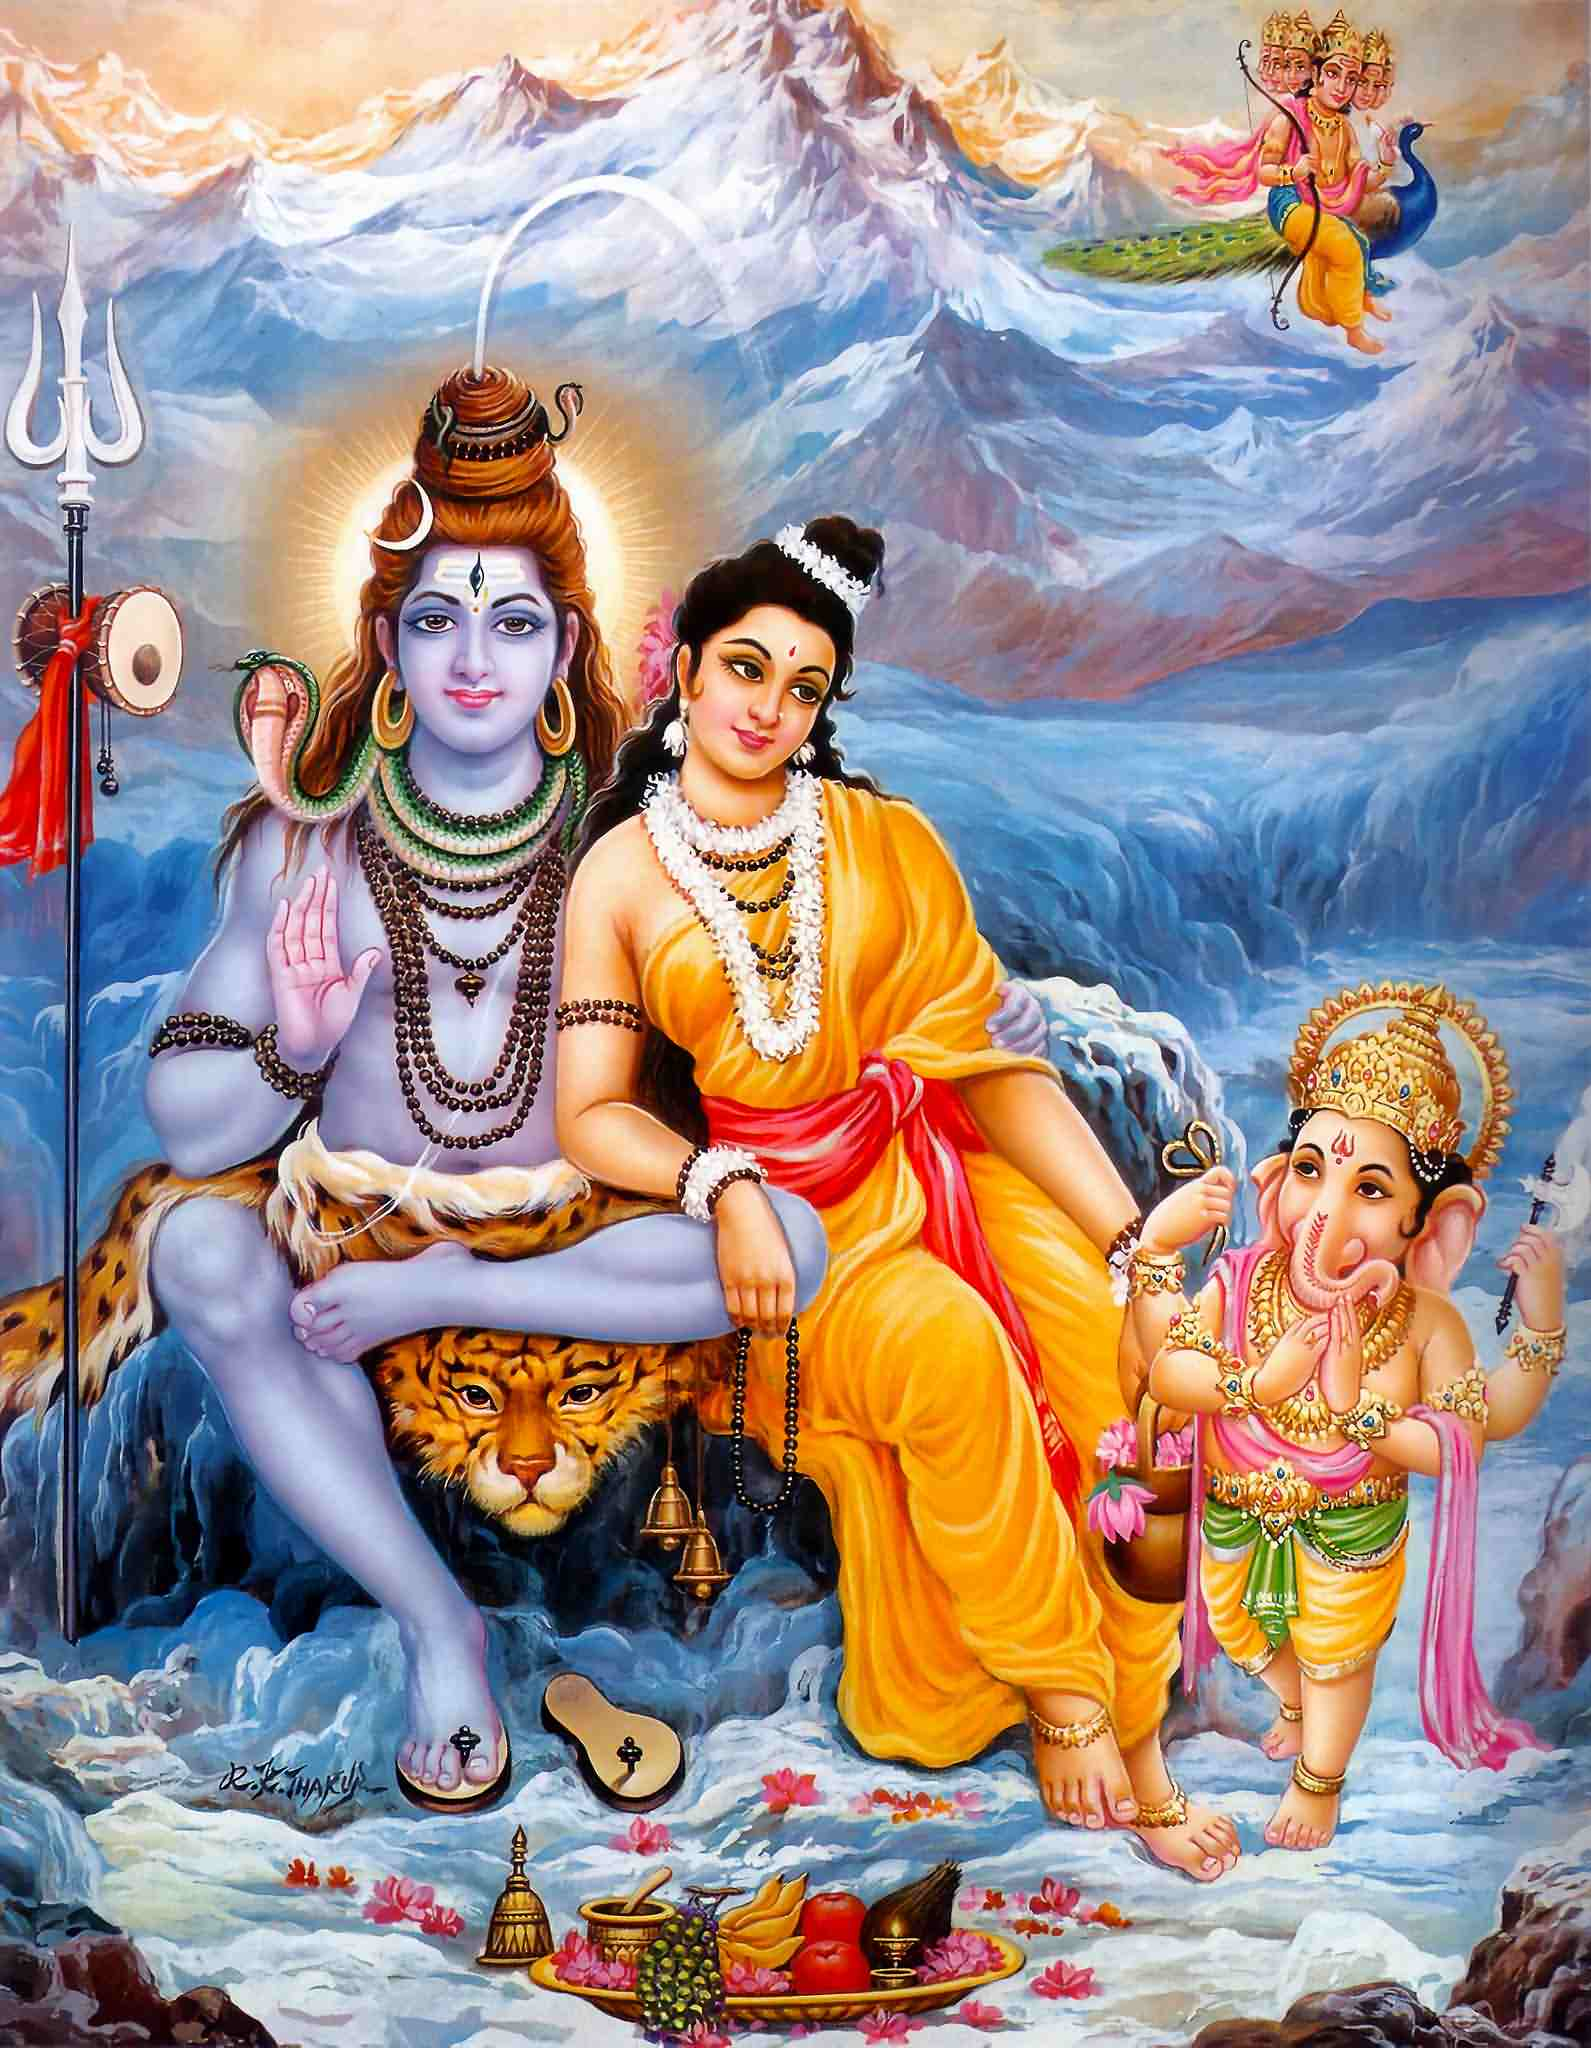 Lord Ganesha Animated Wallpapers Shiva Parvati With Sons Ganesha Findmessages Com